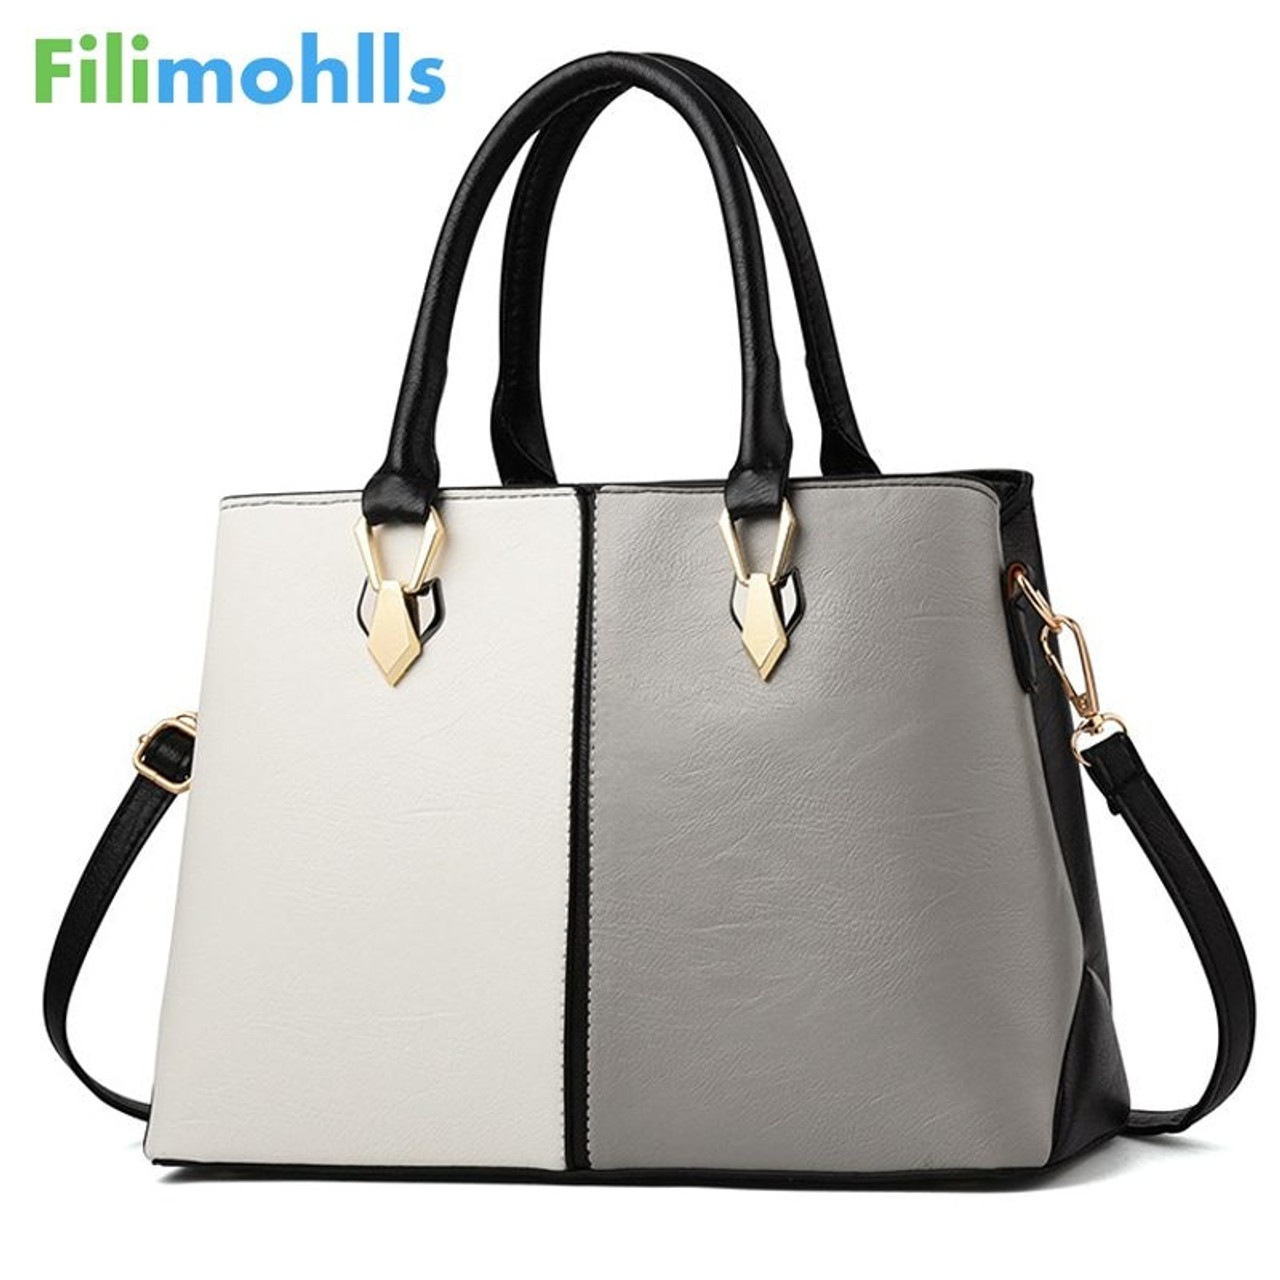 e328eacdb Luxury Handbags Women Bags Designer Leather Bags For Women 2018 Fashion  Ladies Handbag New Arrivals Shoulder ...